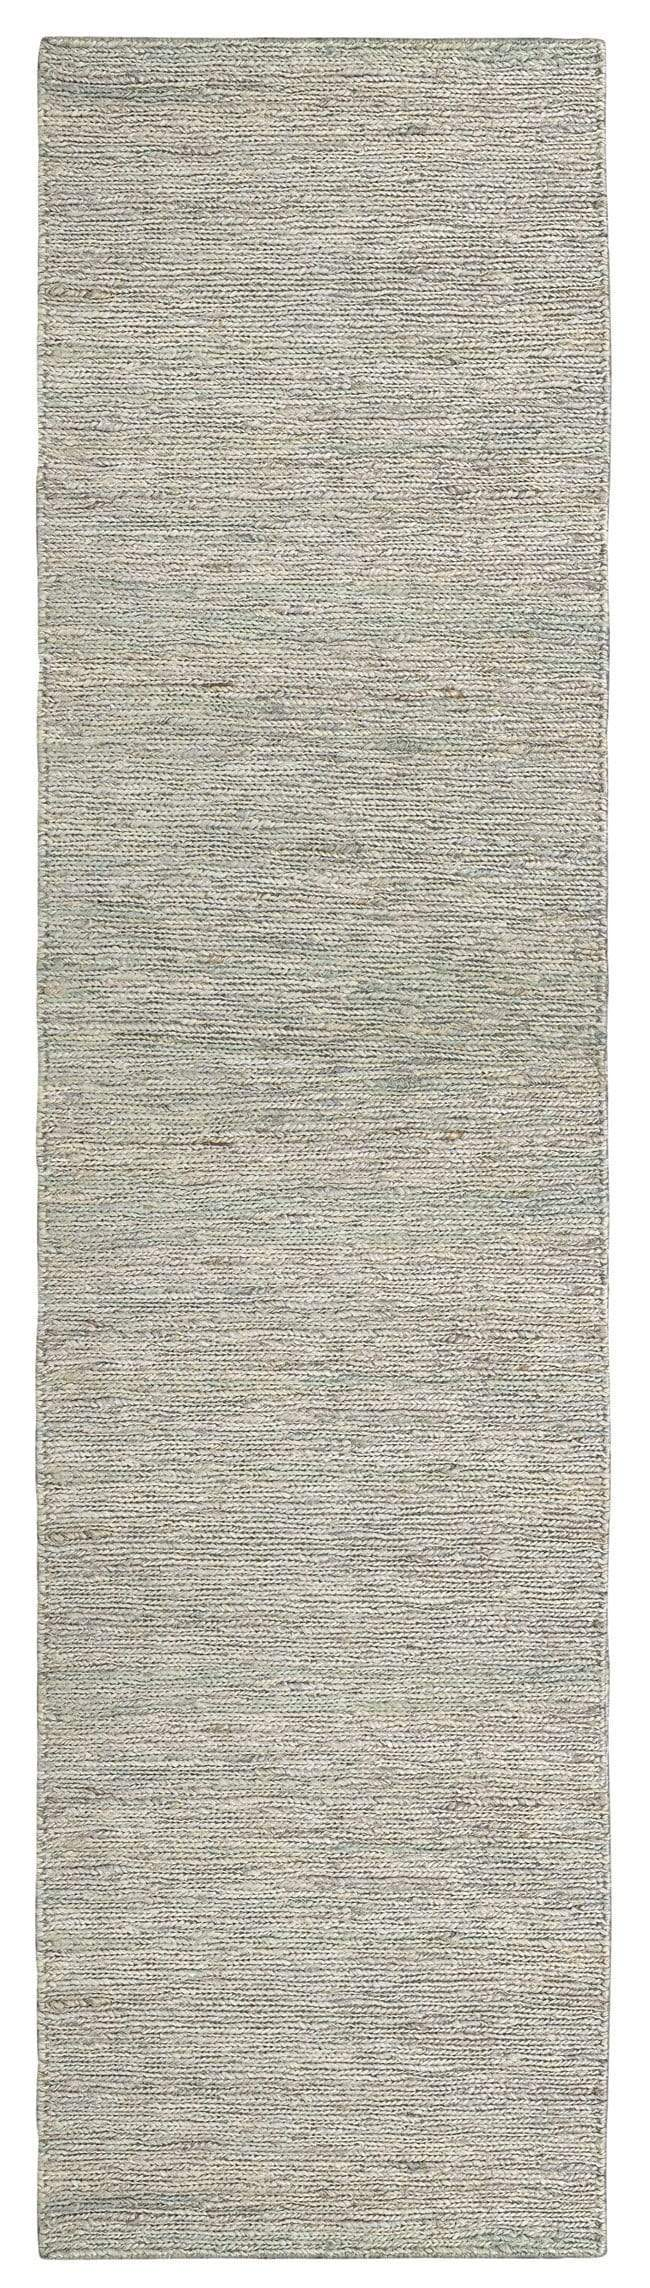 Clover Brown and Green Braided Jute Runner Rug